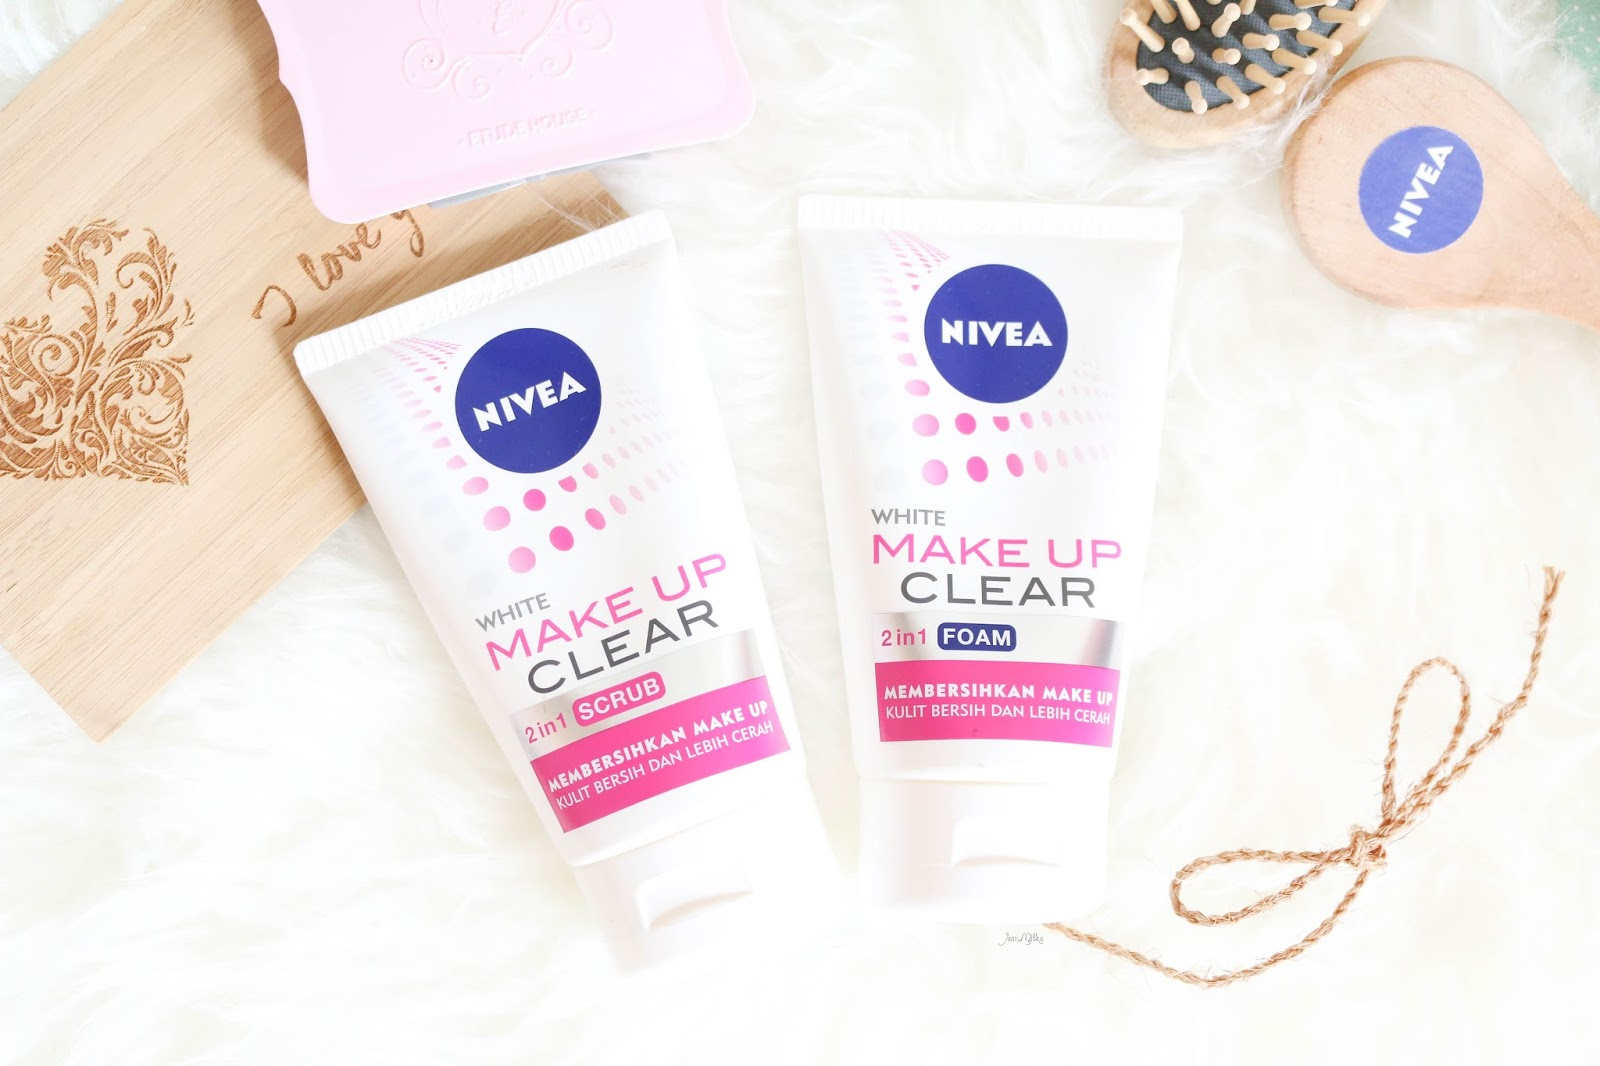 nivea, nivea indonesia, nivea make up clear, nivea makeup clear, nivea make up clear 2in1, nivea facial wash, fascial wash, drugstore, review nivea, review nivea make up clear